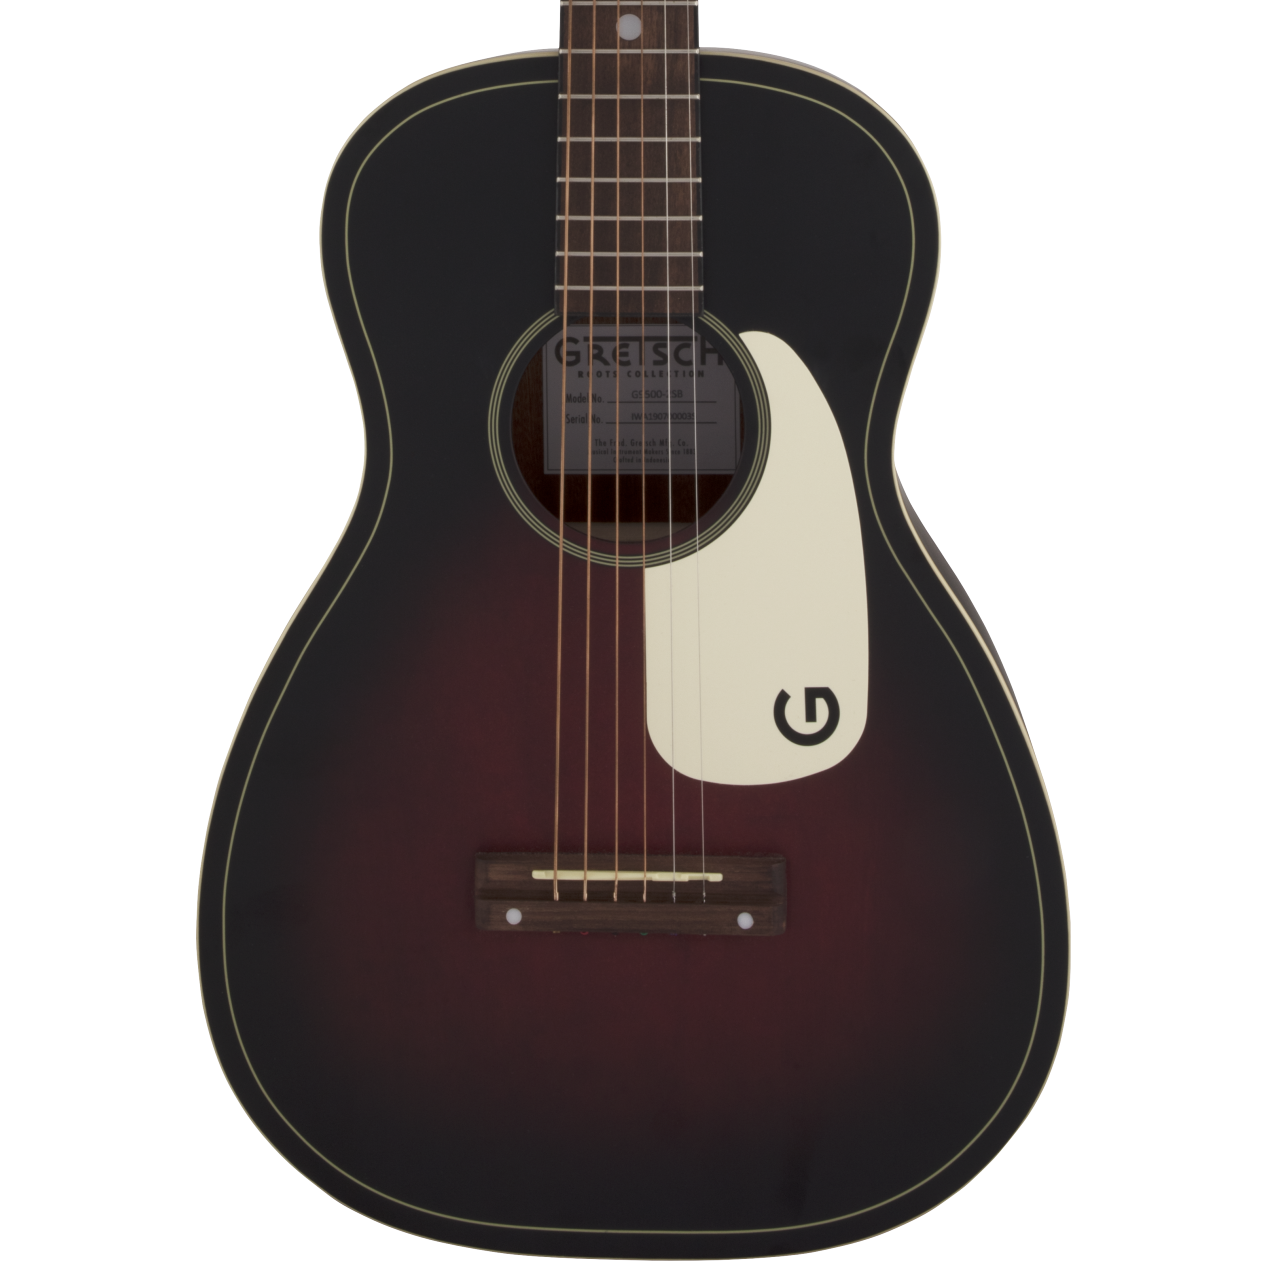 Gretsch Jim Dandy G9500 Parlor Acoustic